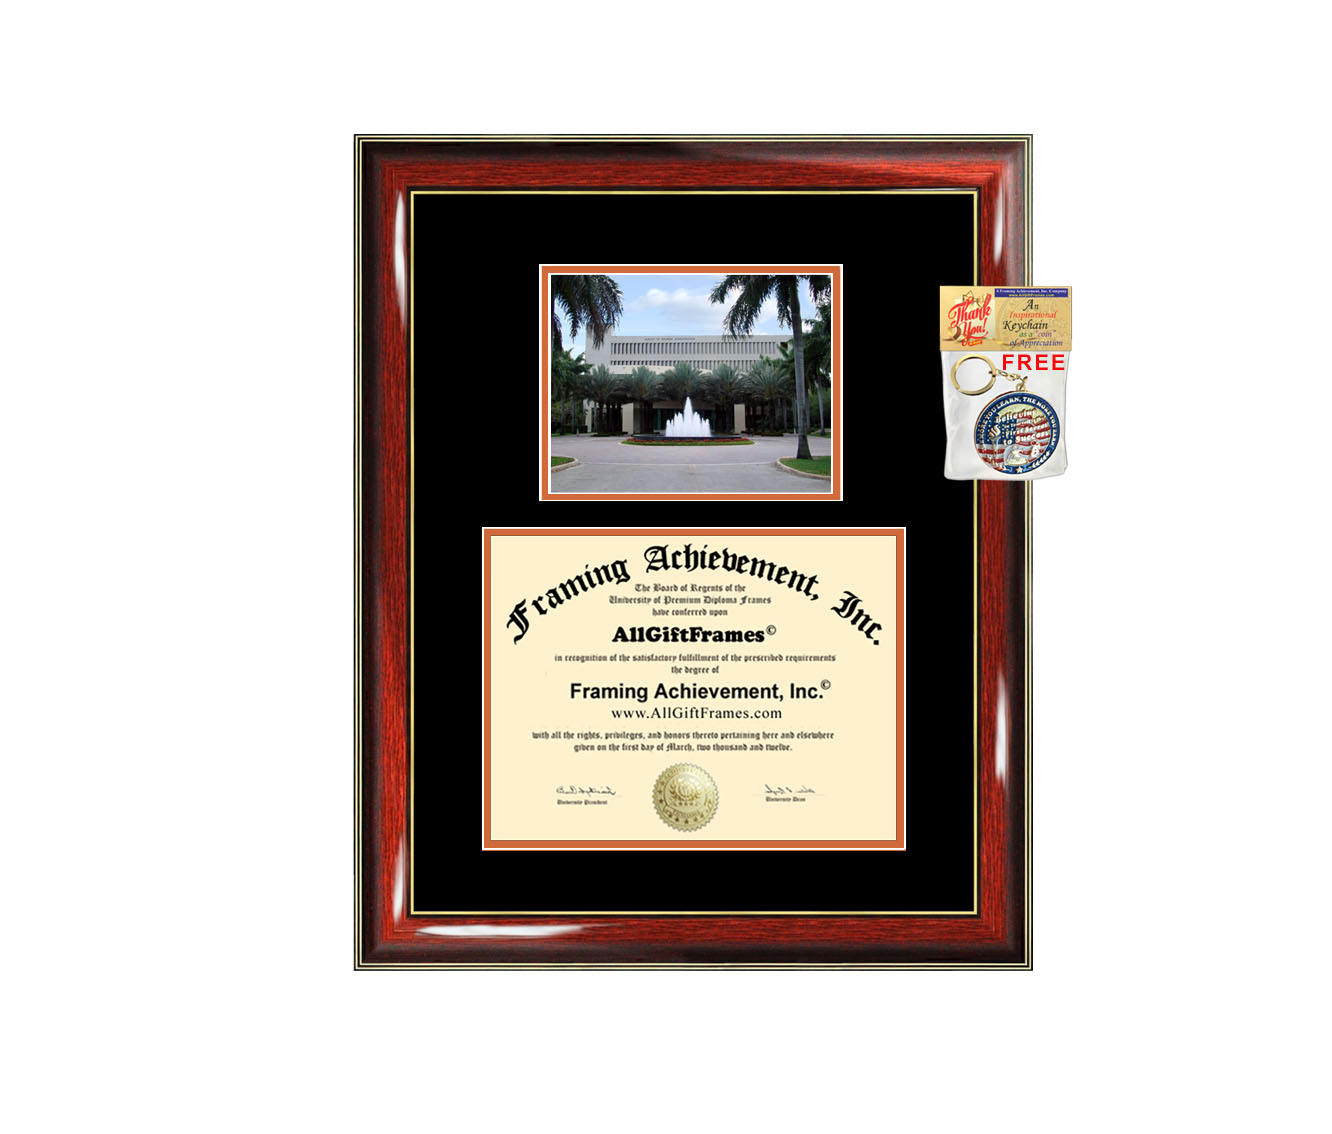 University of Miami diploma frame campus photo certificate framing gra